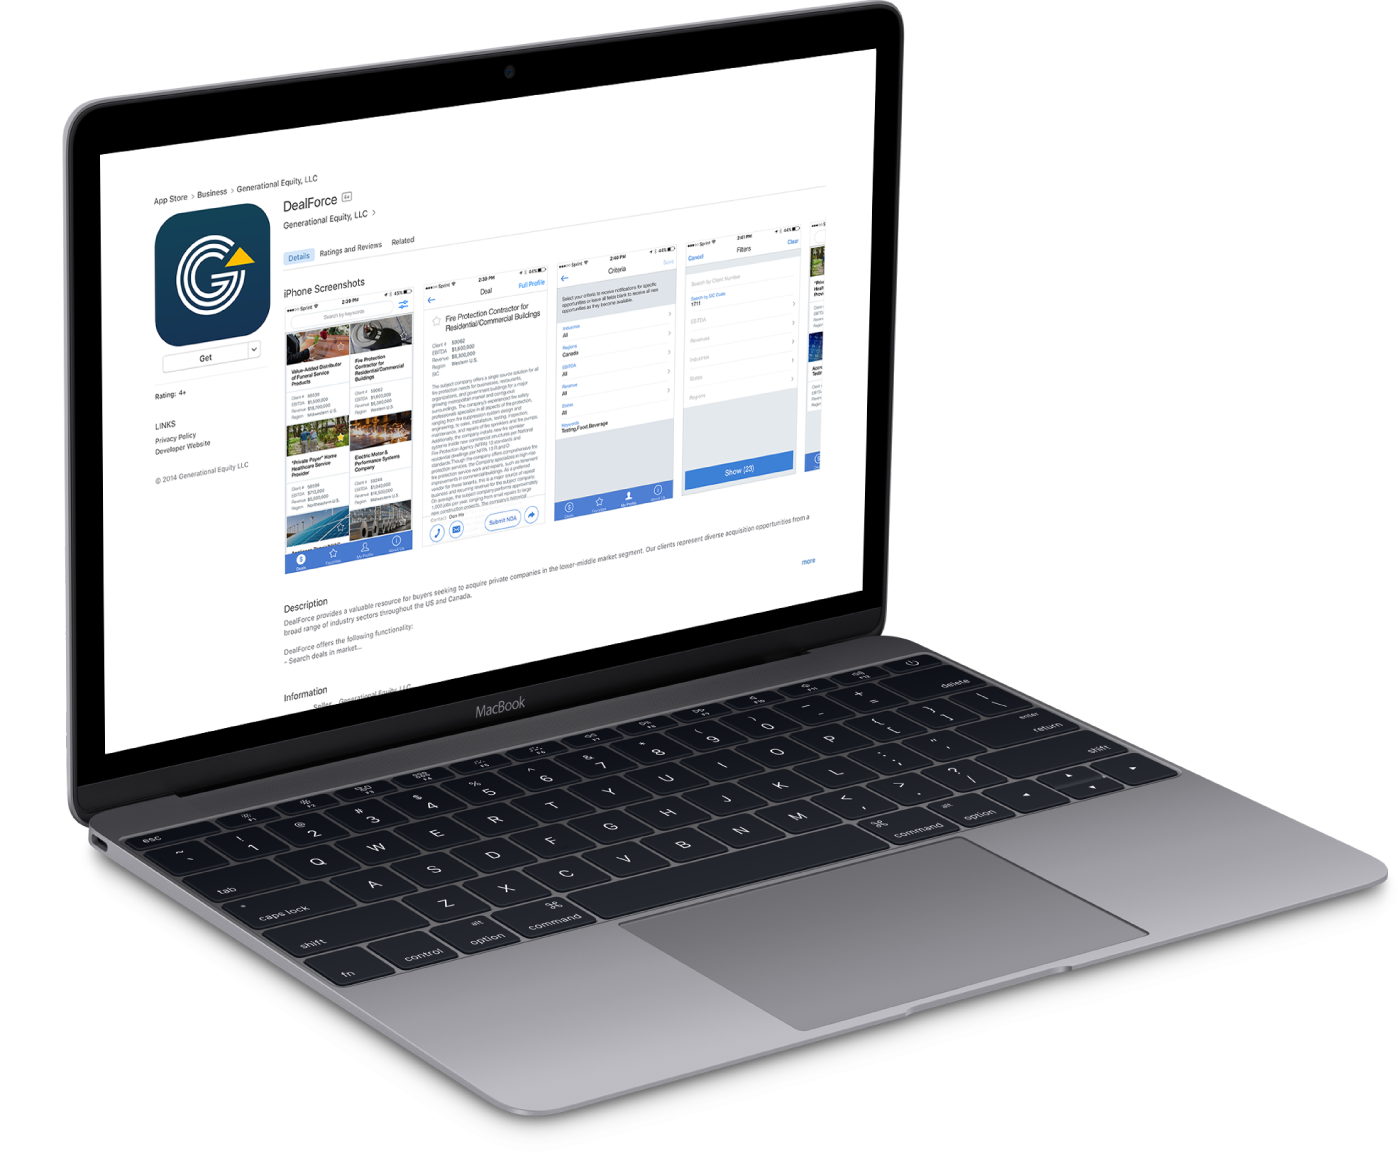 DealForce laptop - app